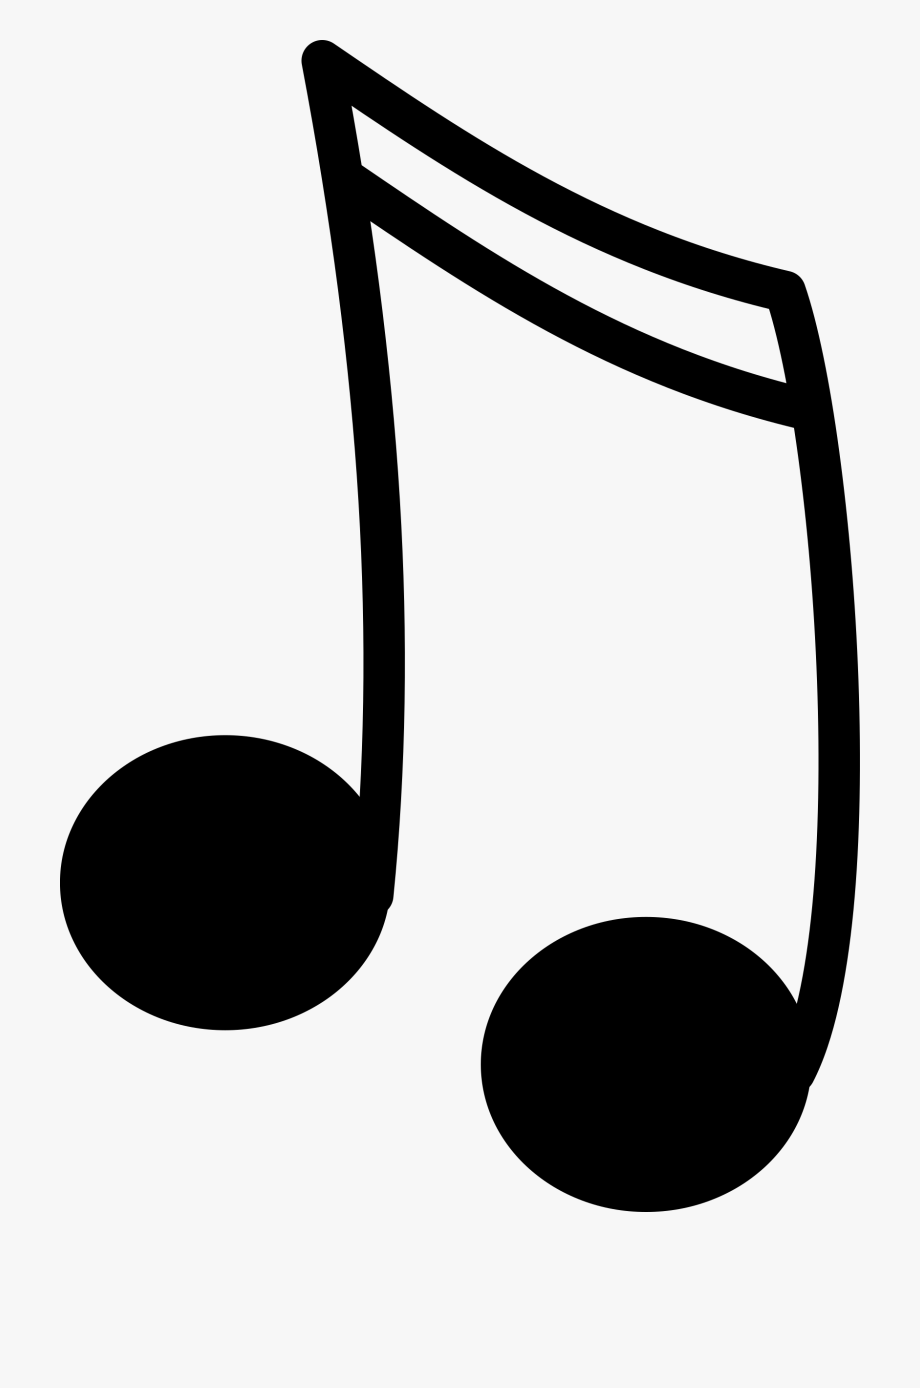 Music Note Clipart , Transparent Cartoon, Free Cliparts.